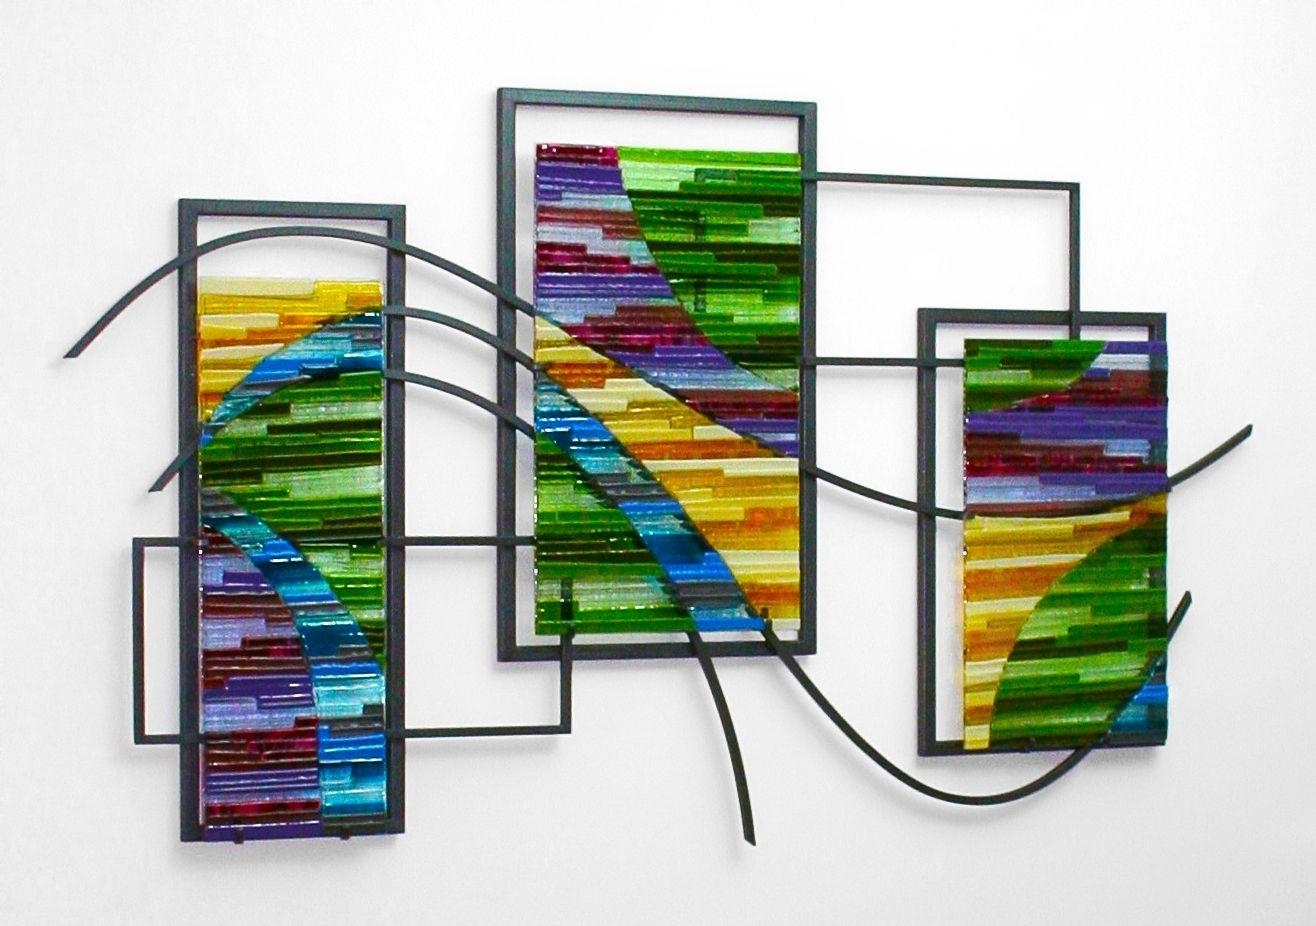 Custom Fused Glass | Custommade Within Fused Glass Wall Art For Sale (View 4 of 20)